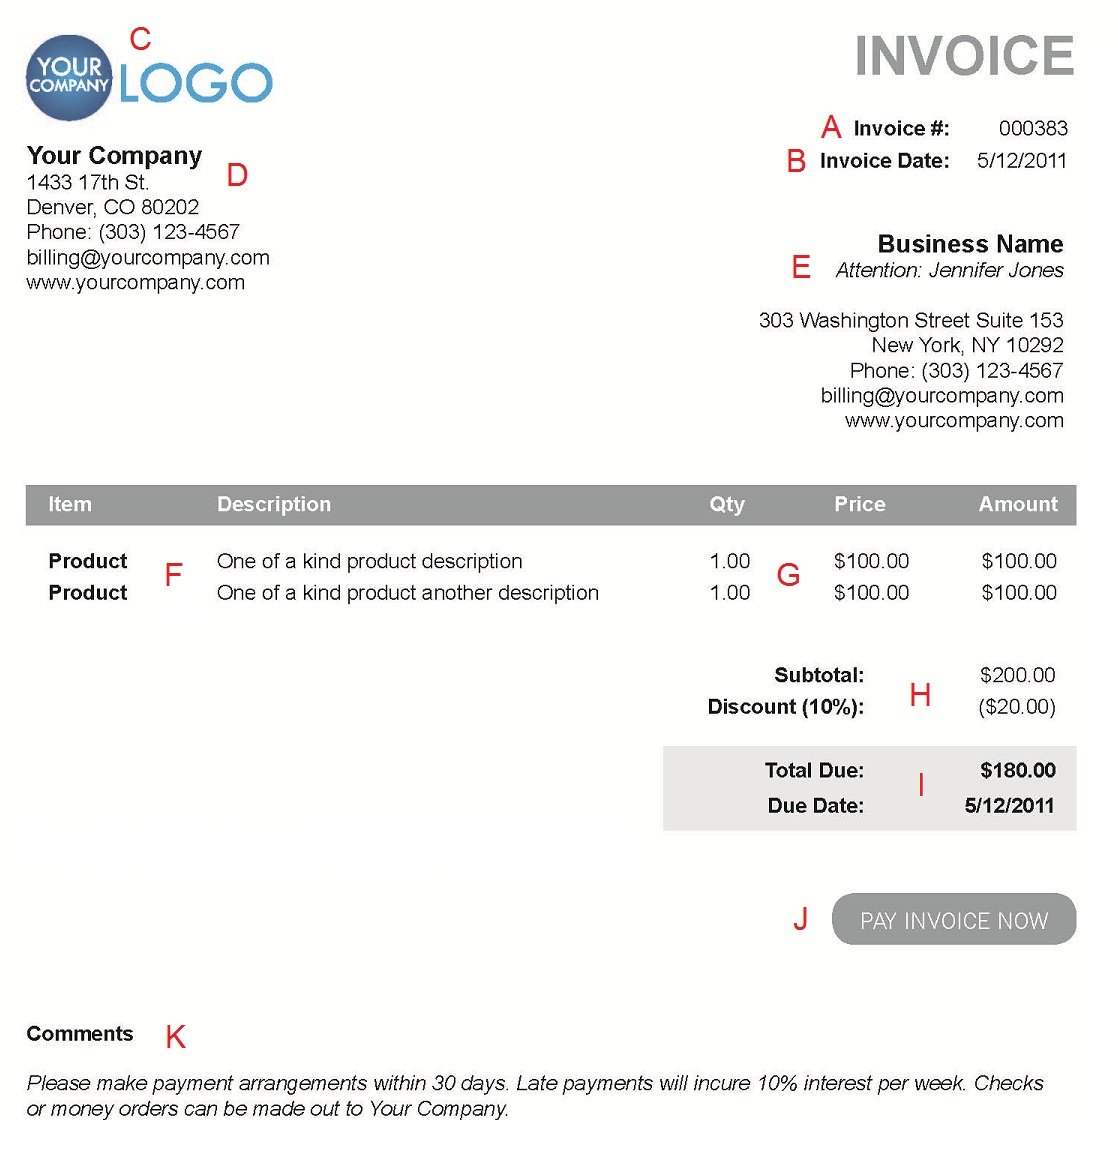 Coolmathgamesus  Inspiring The  Different Sections Of An Electronic Payment Invoice With Lovely A  With Extraordinary Sephora Gift Receipt Also Usps Lost Receipt In Addition Official Receipt Template And App Scan Receipts As Well As Dentist Receipt Additionally Receipt Form Free From Paysimplecom With Coolmathgamesus  Lovely The  Different Sections Of An Electronic Payment Invoice With Extraordinary A  And Inspiring Sephora Gift Receipt Also Usps Lost Receipt In Addition Official Receipt Template From Paysimplecom